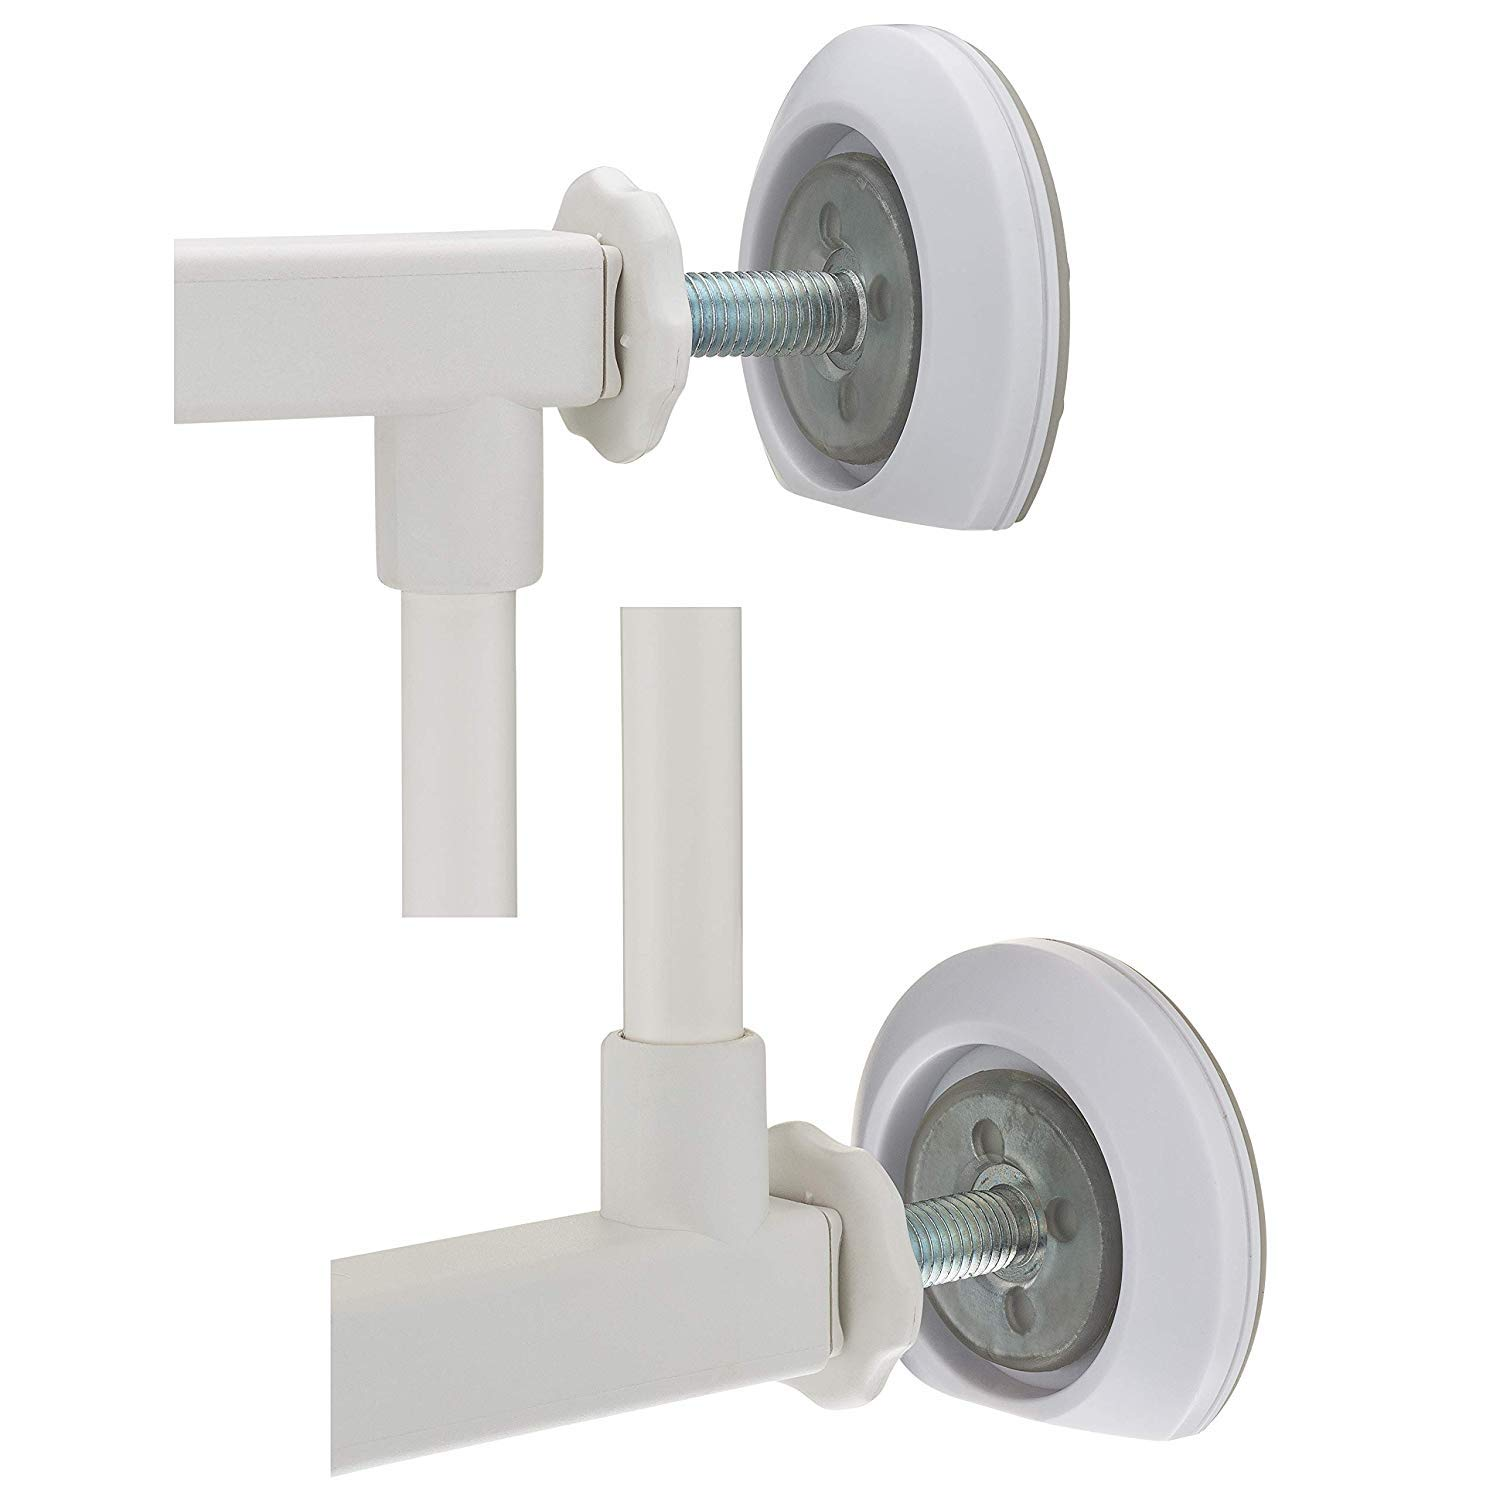 Wall Saver Protects Walls from Baby Gate Damage - Makes Safety Gates More Secure - for Walk Thru Pressure Mounted Gates - for Childproofing, Pet Proofing - 4 Mini Flat Bottom Wall Savers